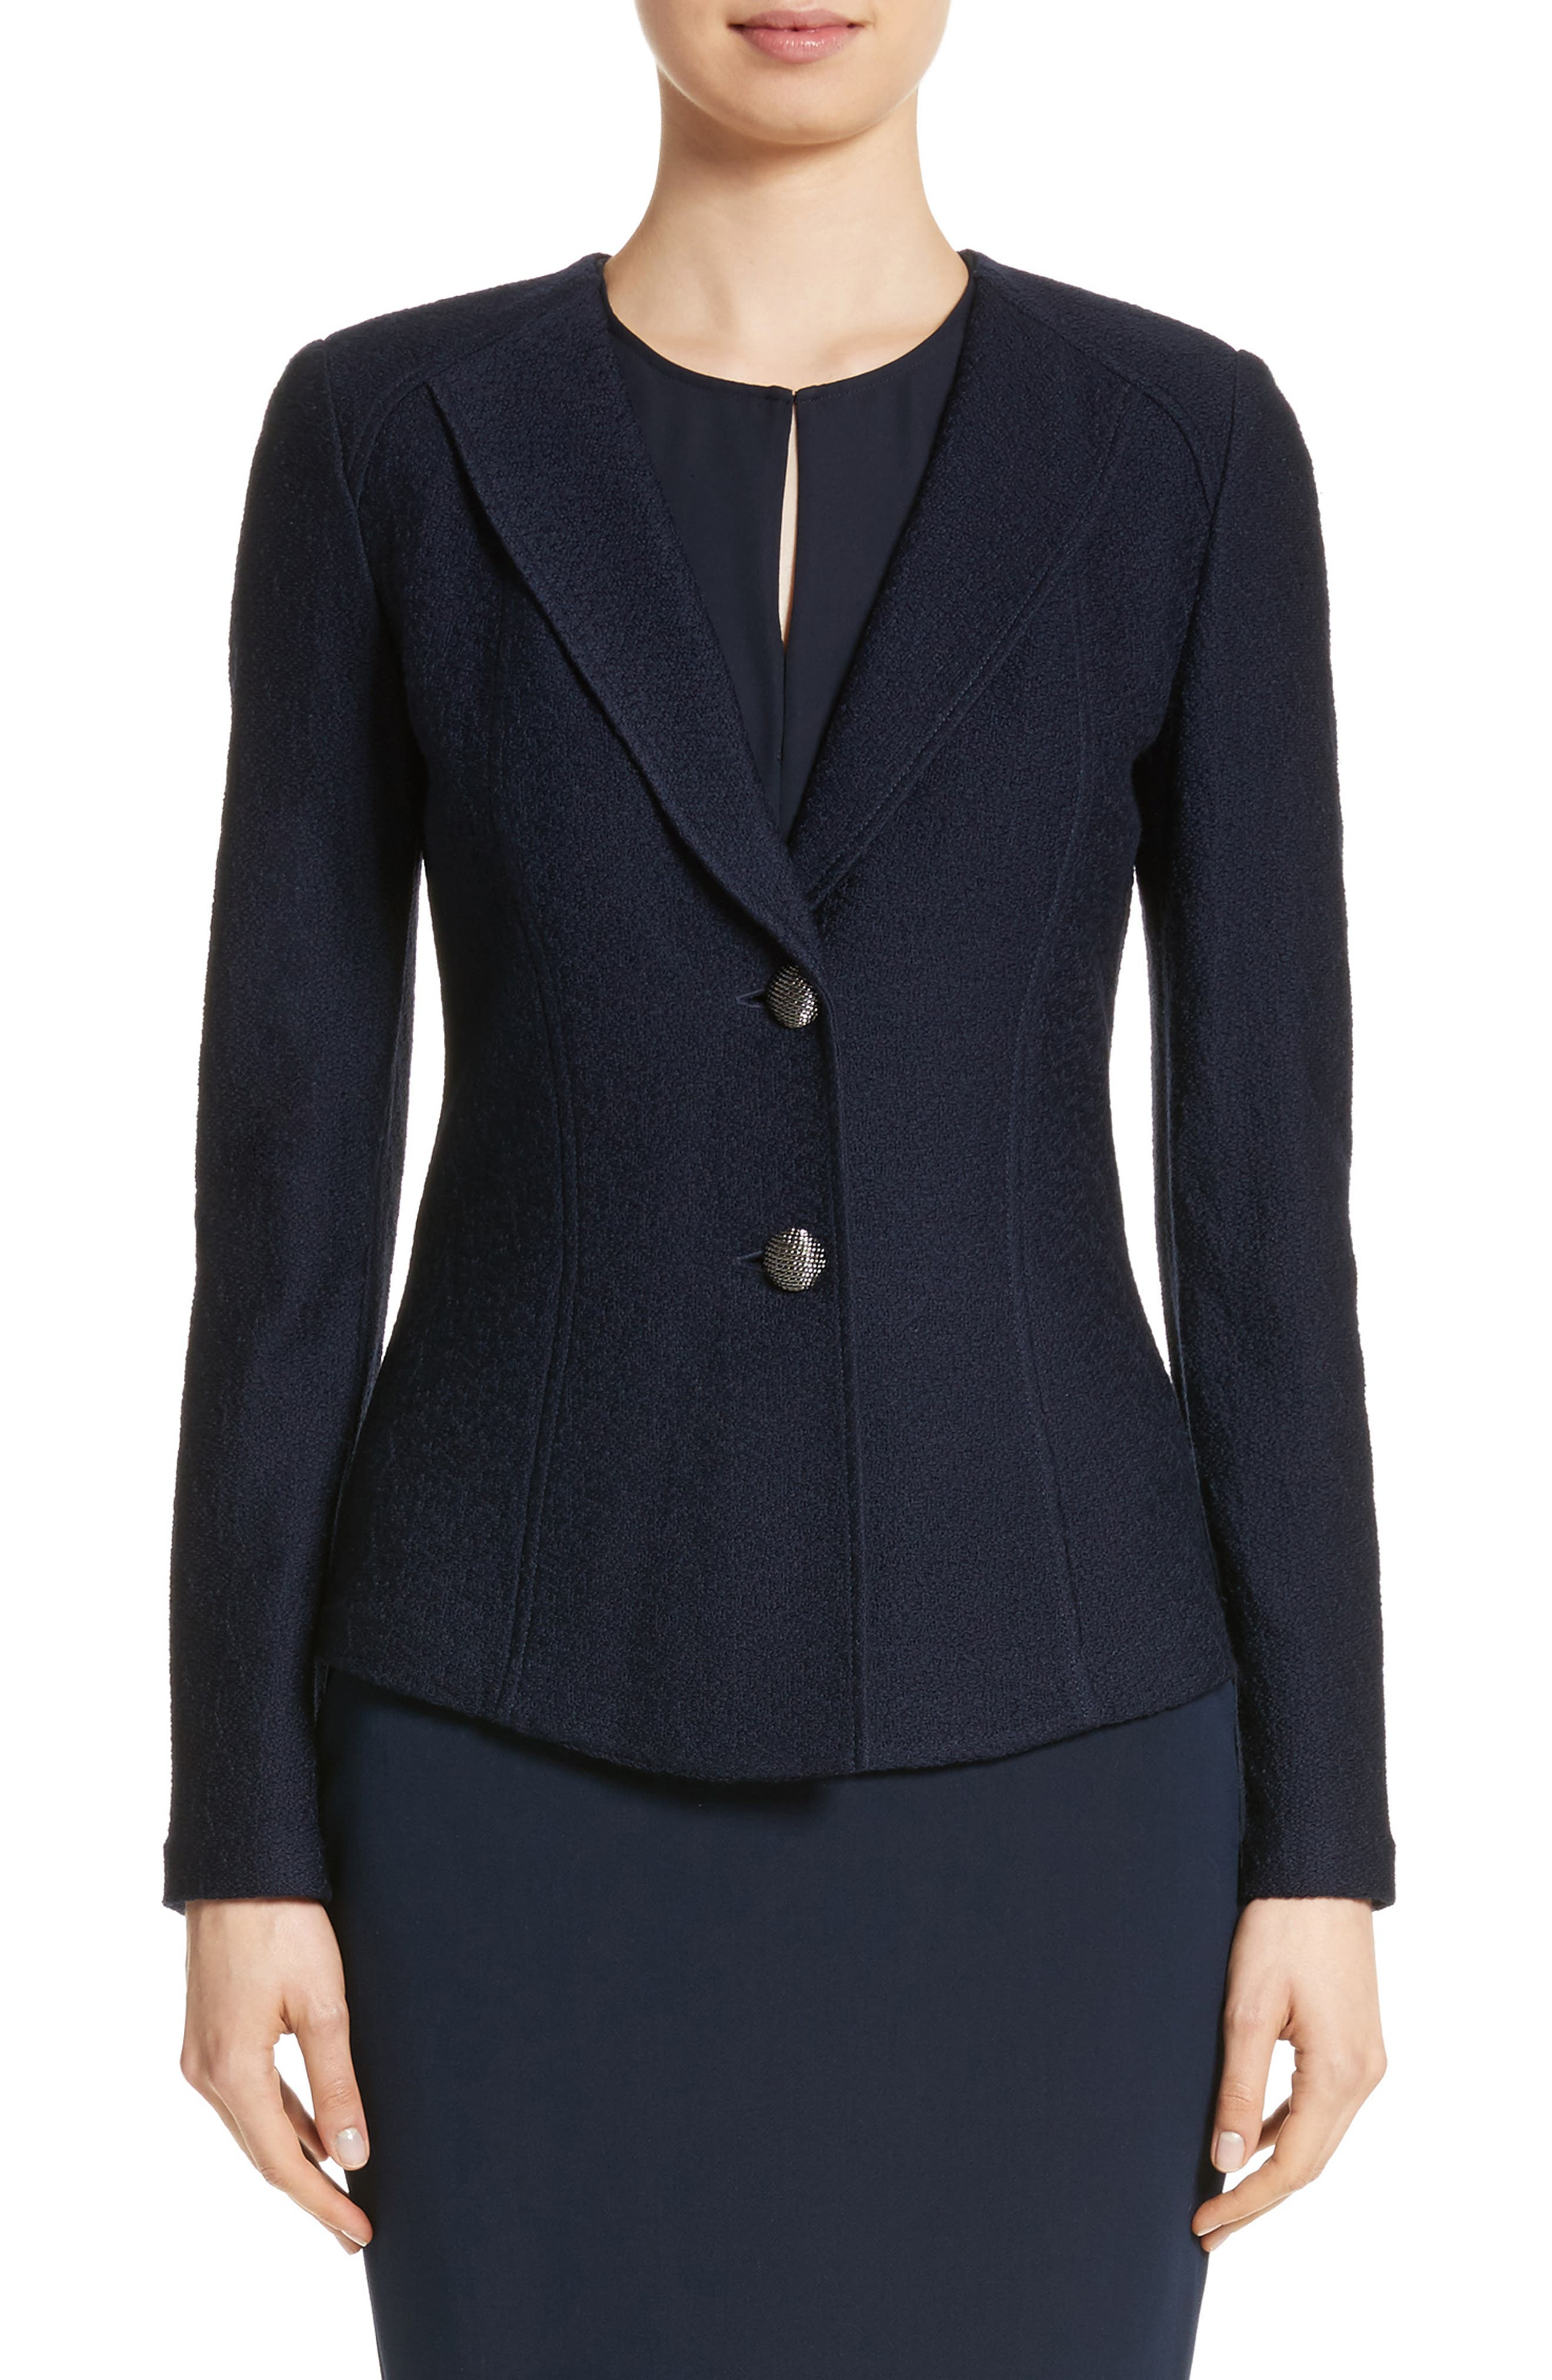 Alternate Image 1 Selected - St. John Collection Hannah Knit Jacket